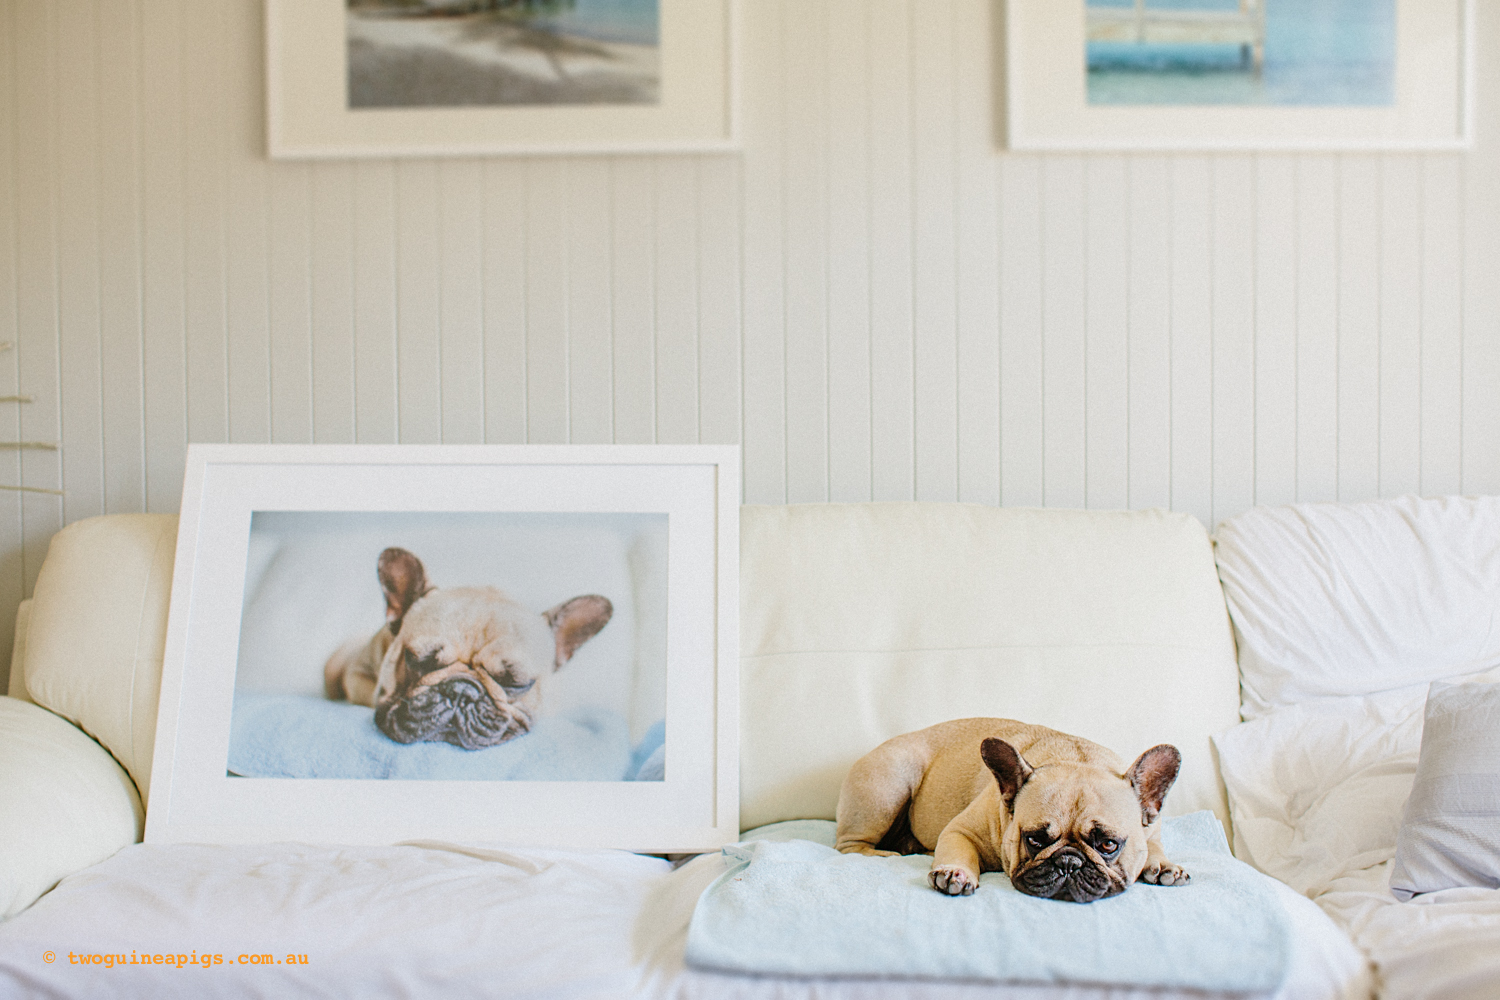 Featuring Pom Pom the French Bulldog and his twoguineapigs framed artwork